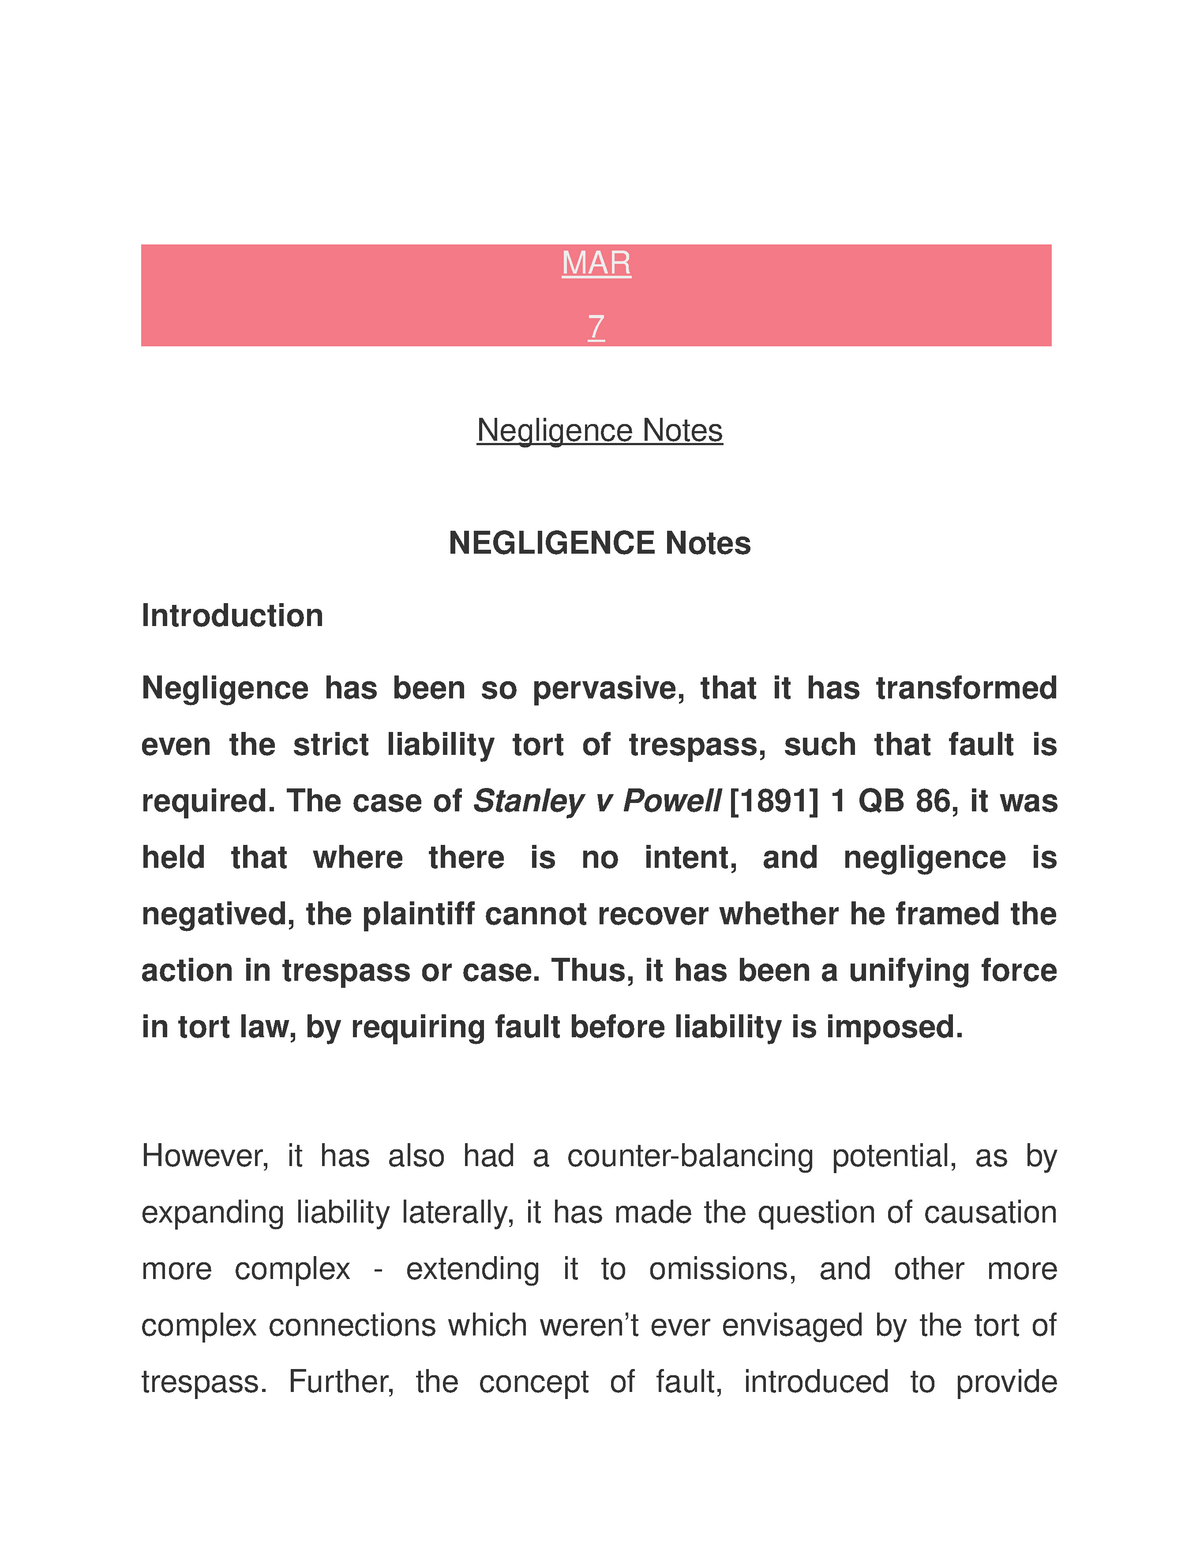 full notes on negligence under tort law - law - StuDocu